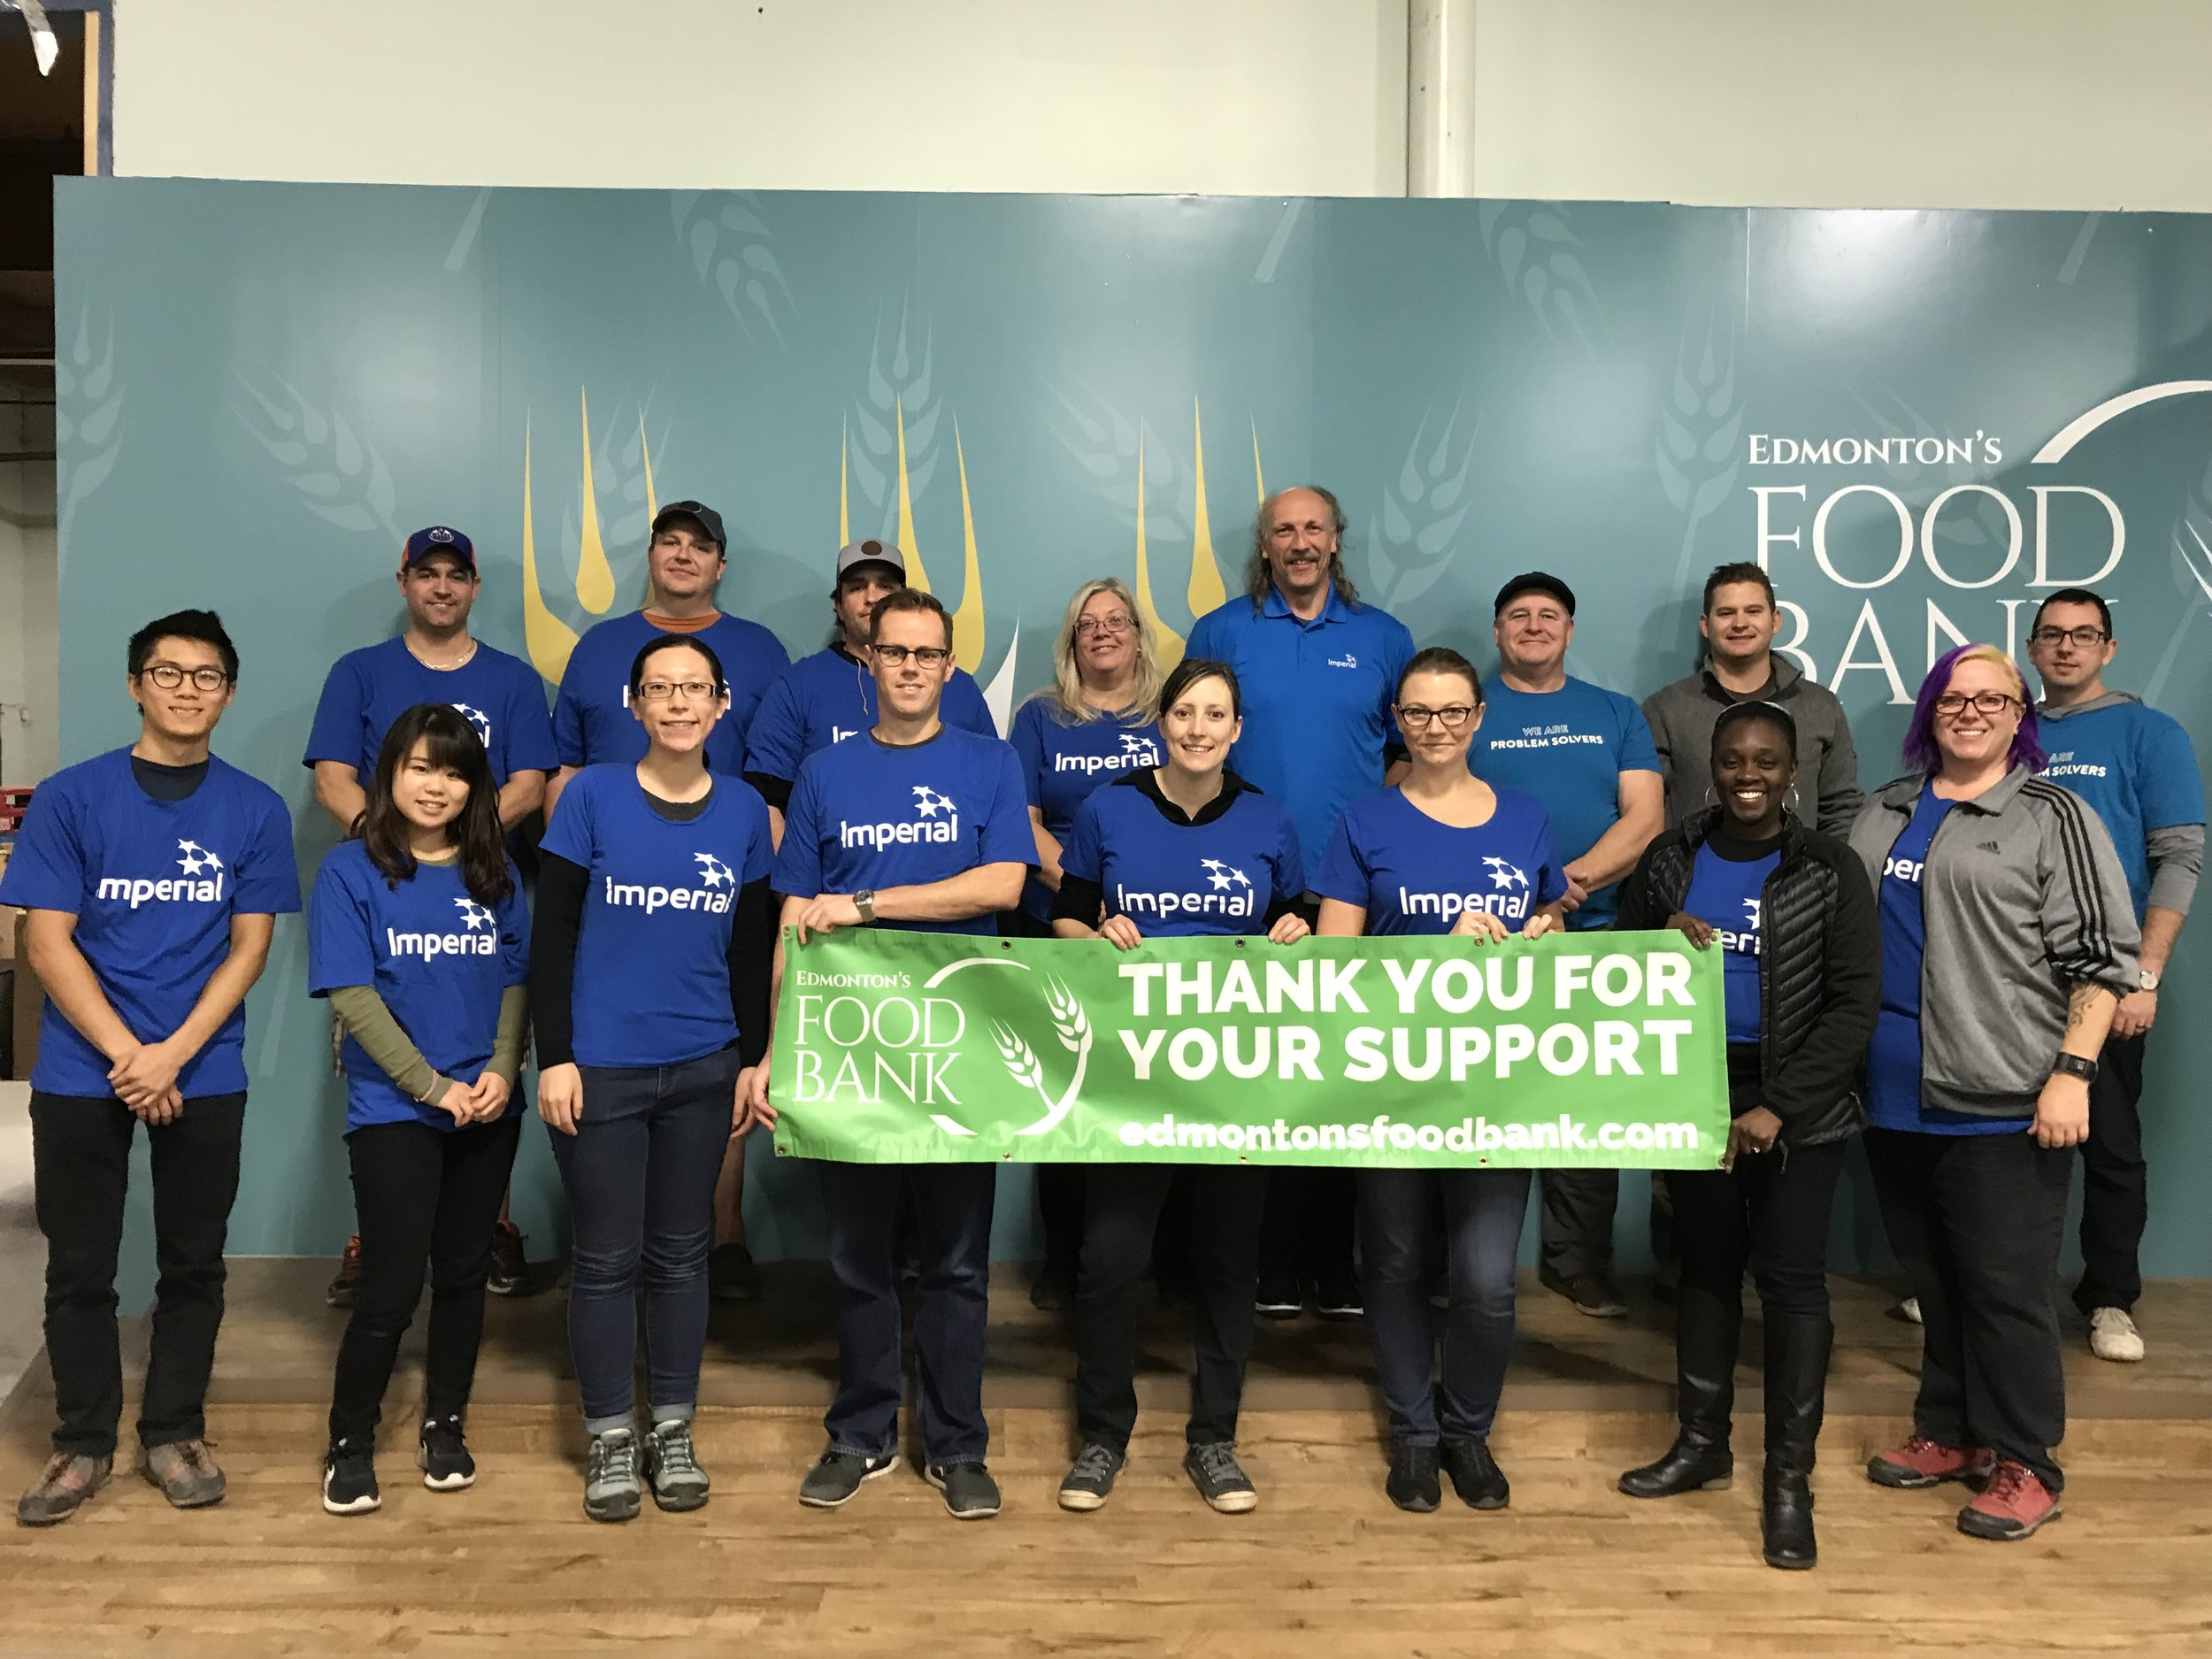 Imperial Day of Caring at Edmonton's Food Bank